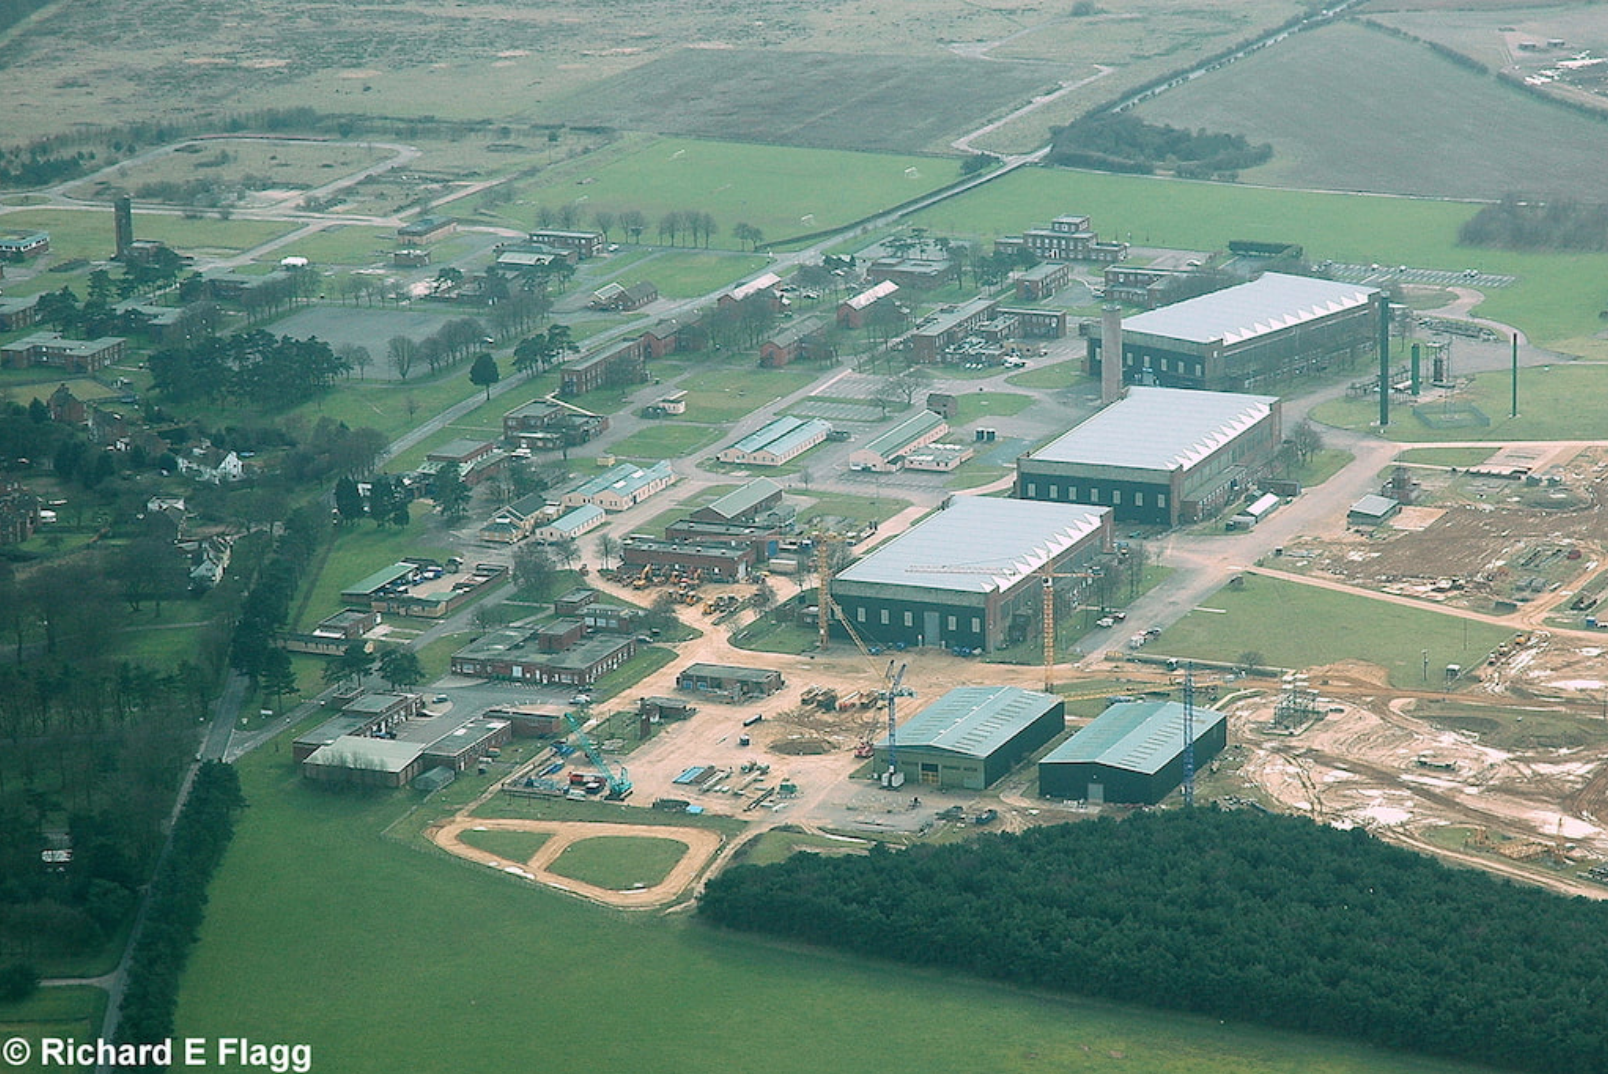 016Aerial View of RAF Bircham Newton Airfield - 15 March 2009.png